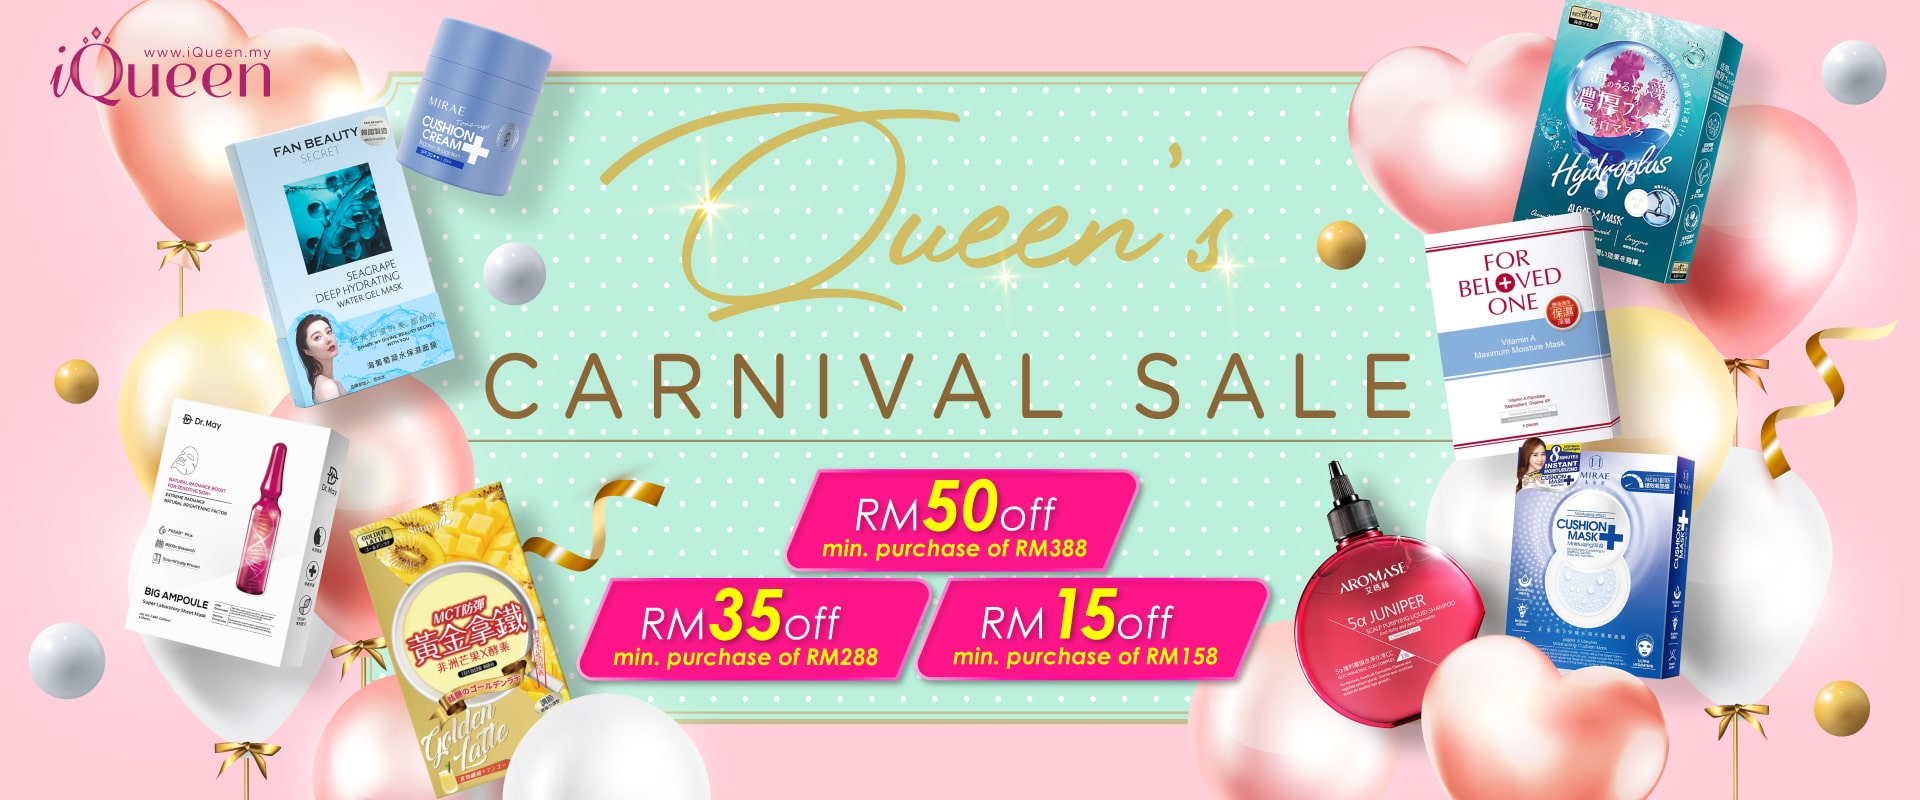 iQueen Carnival Sale Coupon